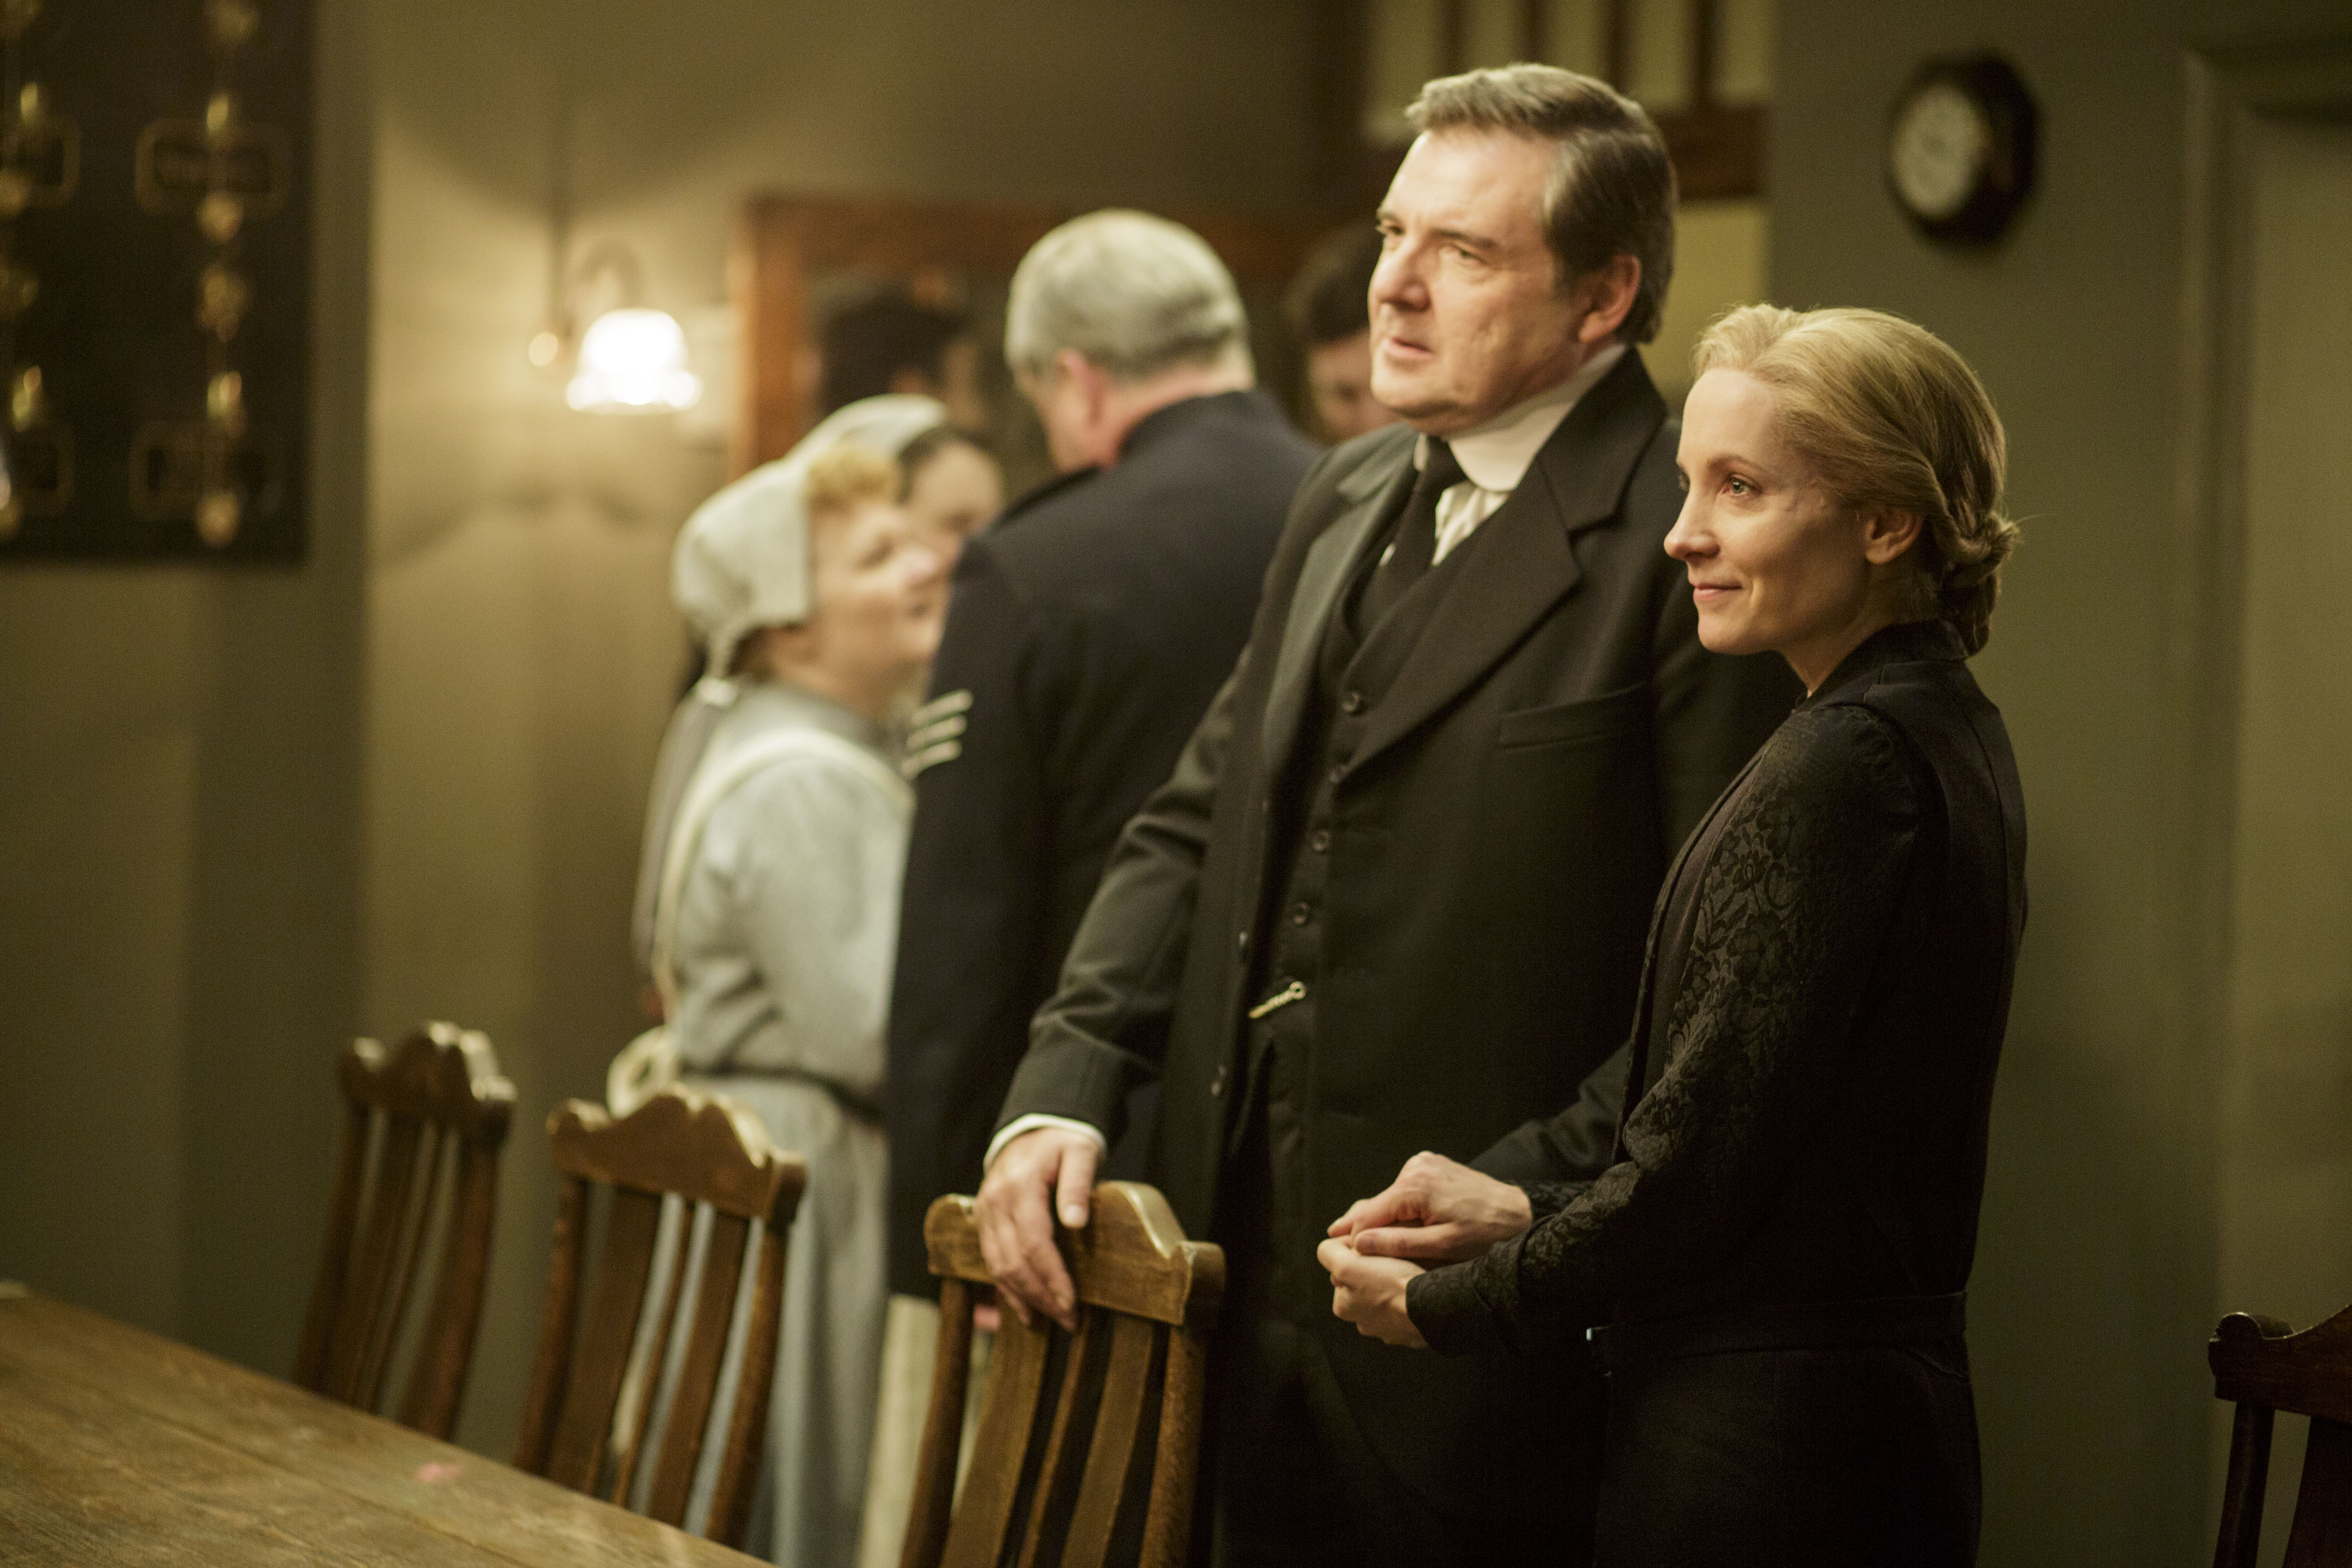 Downton Abbey: The End of an Era